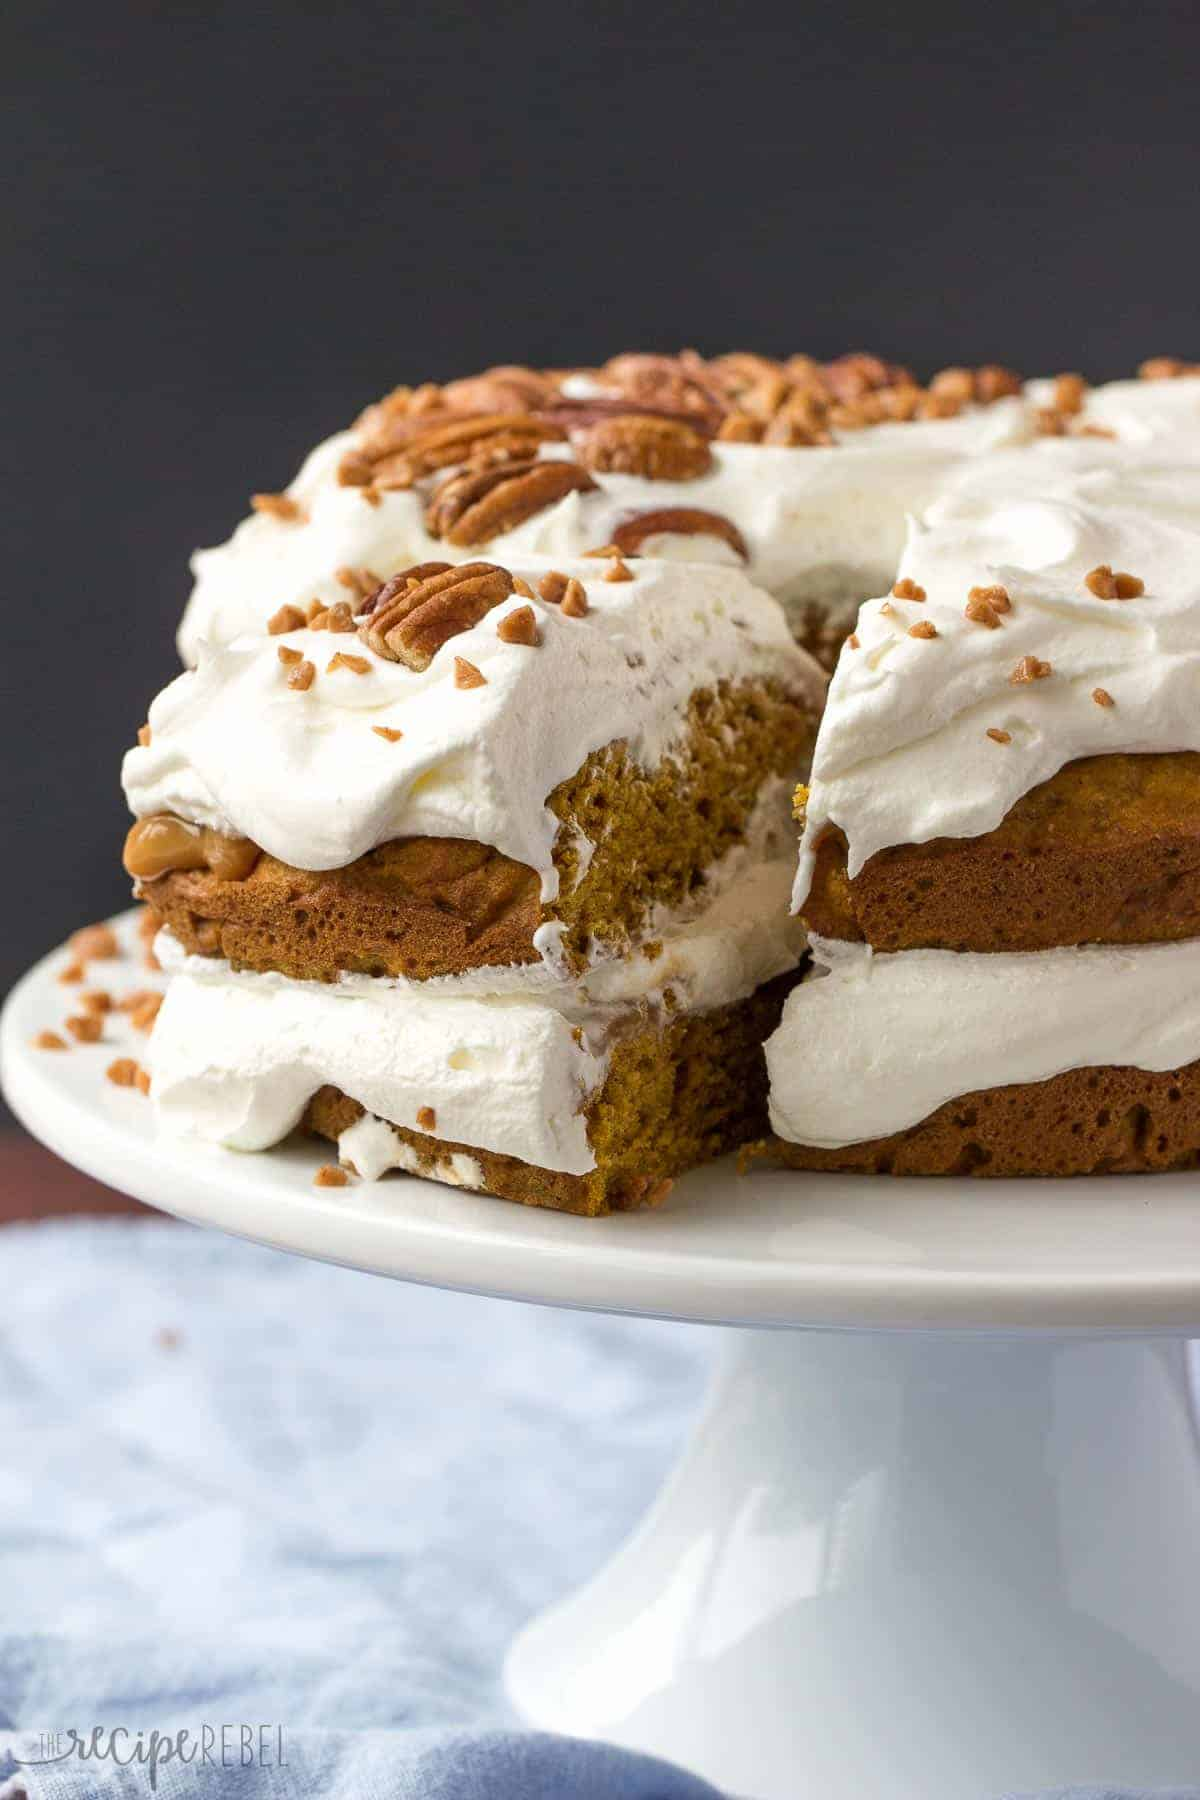 A moist, pumpkin spice cake layered with thick caramel, pecans, and whipped cream -- the perfect holiday dessert!